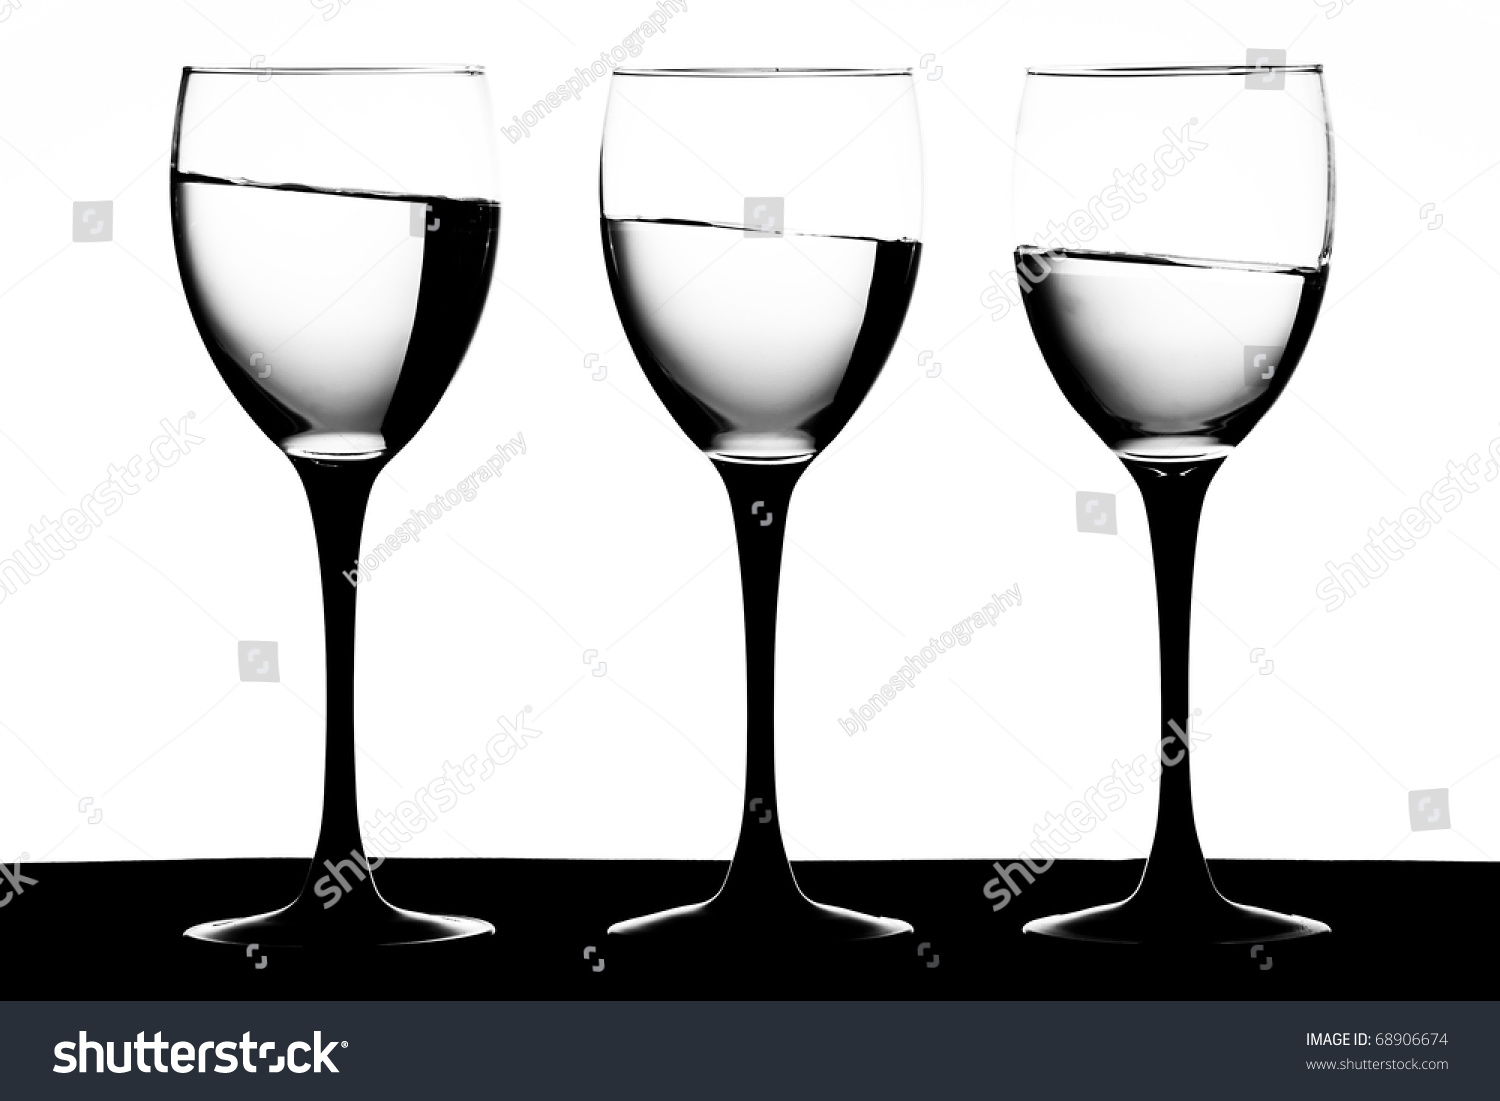 Wine Glasses With Black Stems Black And White Image Of Black Stemmed Wine Glasses With